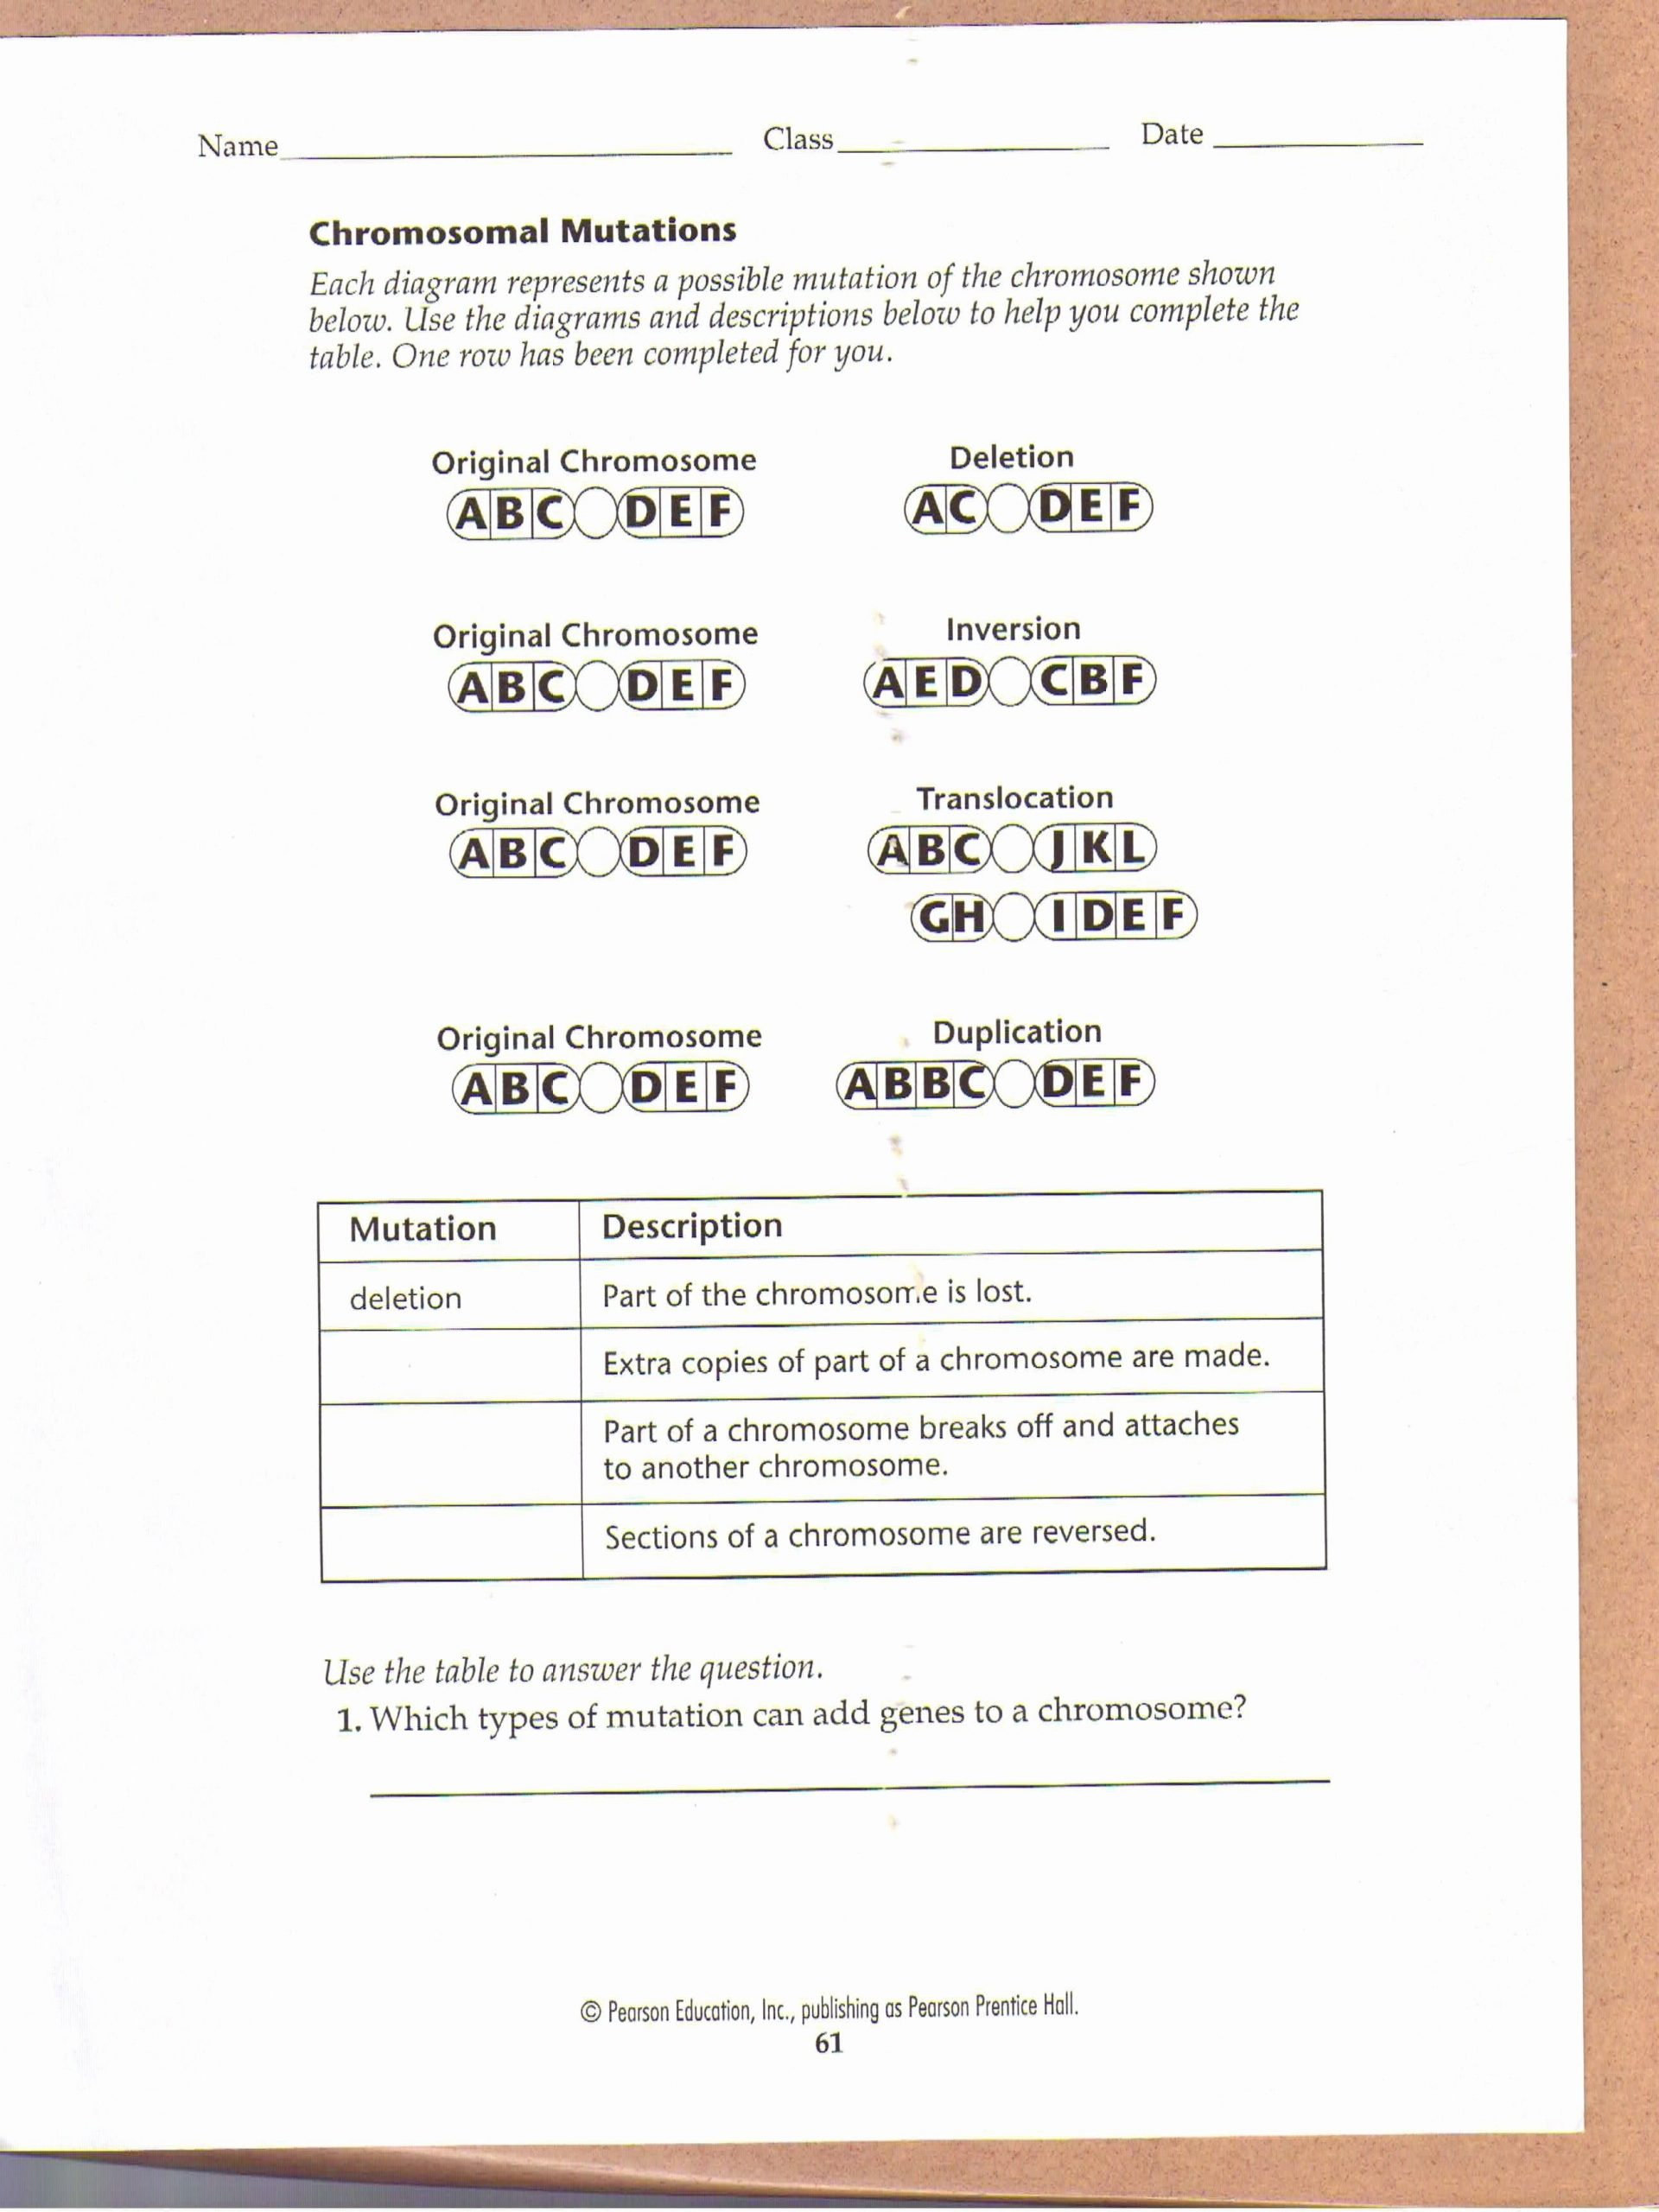 Genetic Mutation Worksheet Answer Key Inspirational